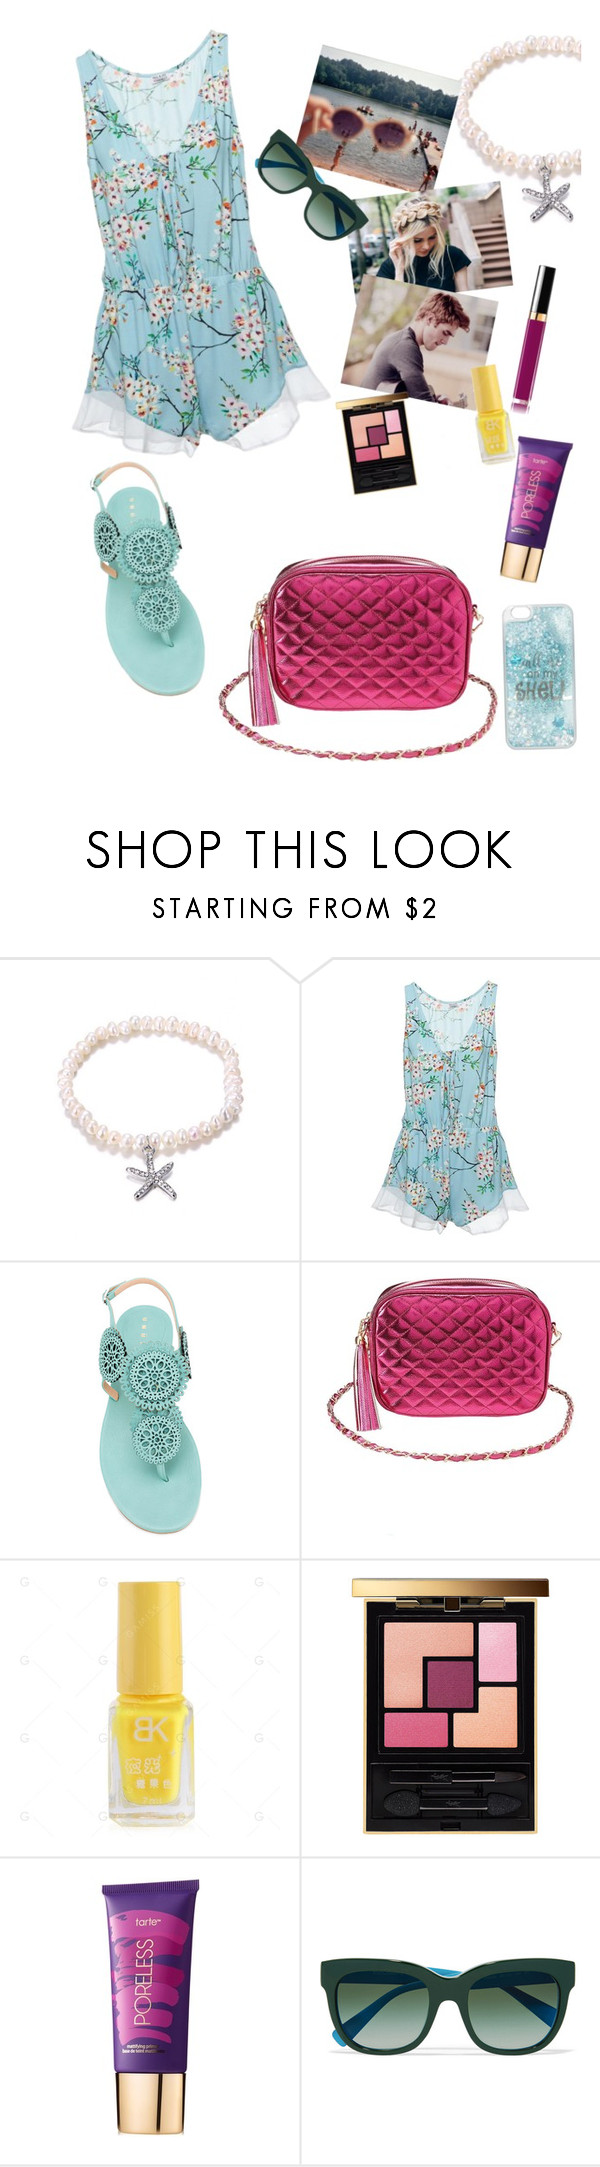 """""""it's a hot one"""" by elliewriter ❤ liked on Polyvore featuring Cosabella, Unützer, Charlotte Russe, Yves Saint Laurent, tarte and Dolce&Gabbana"""